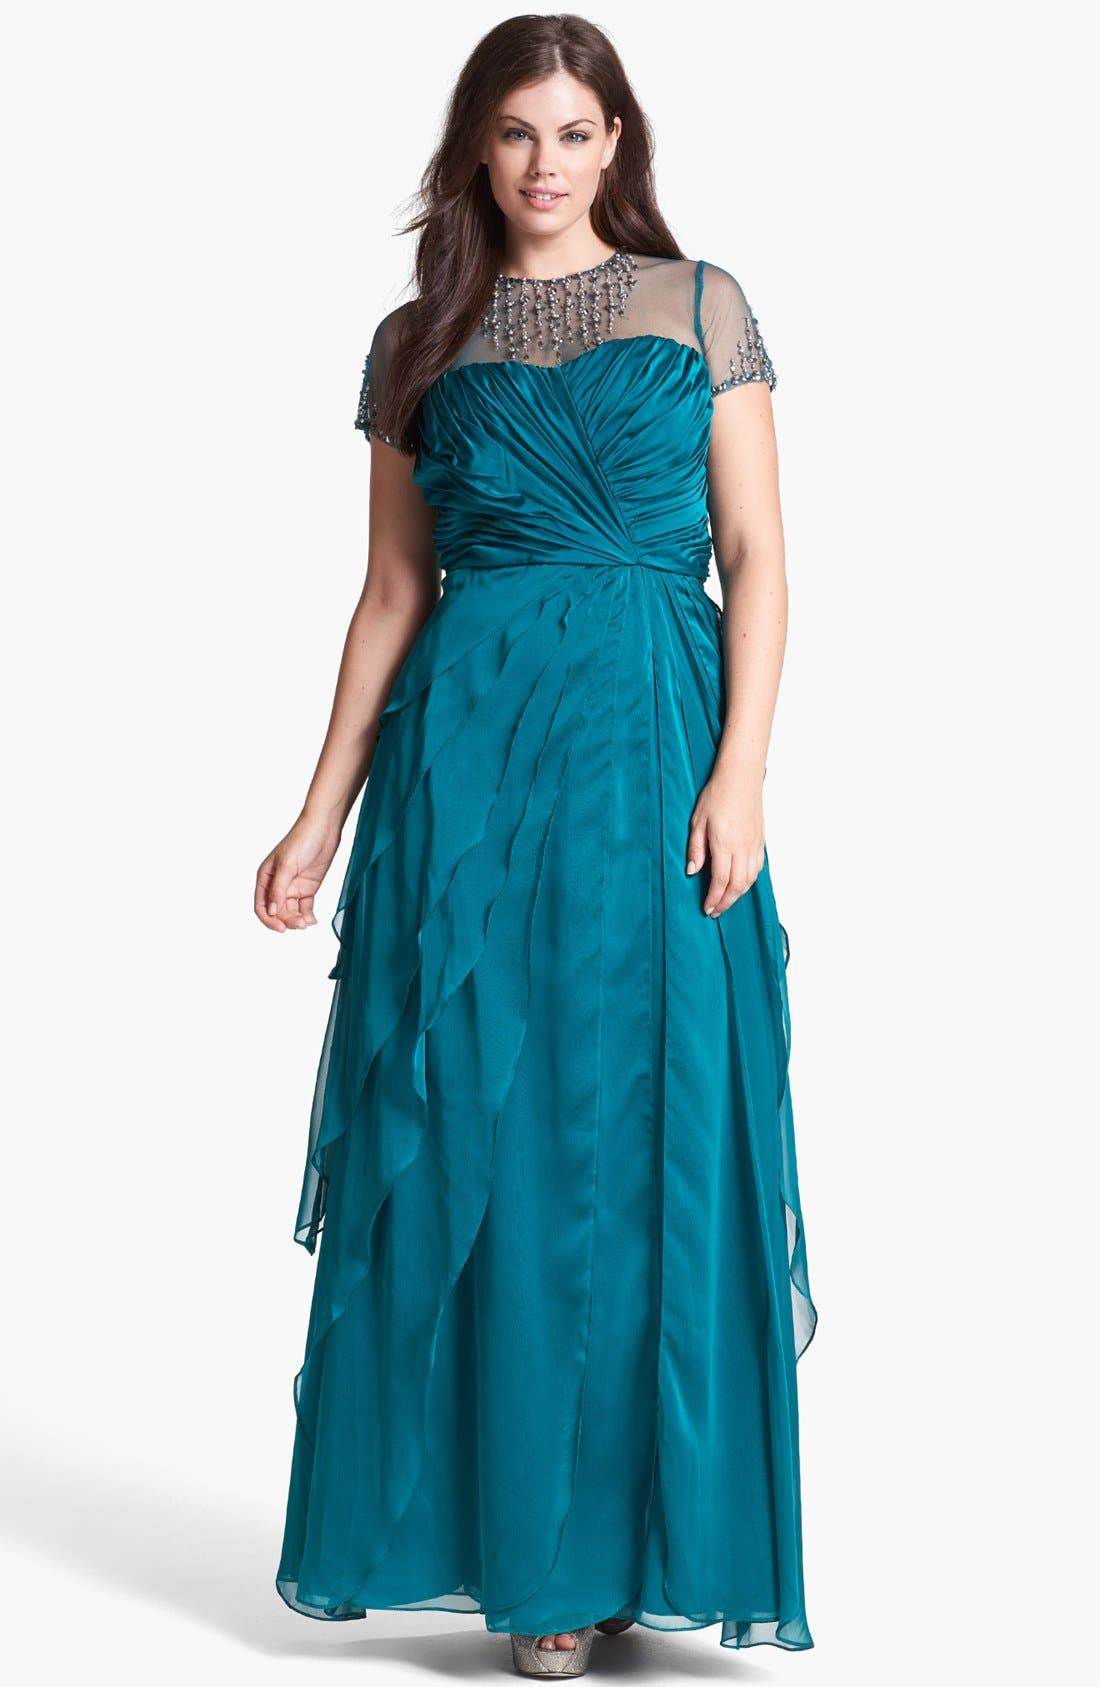 Main Image - Adrianna Papell Embellished Yoke Ruffled Charmeuse Gown (Plus Size)